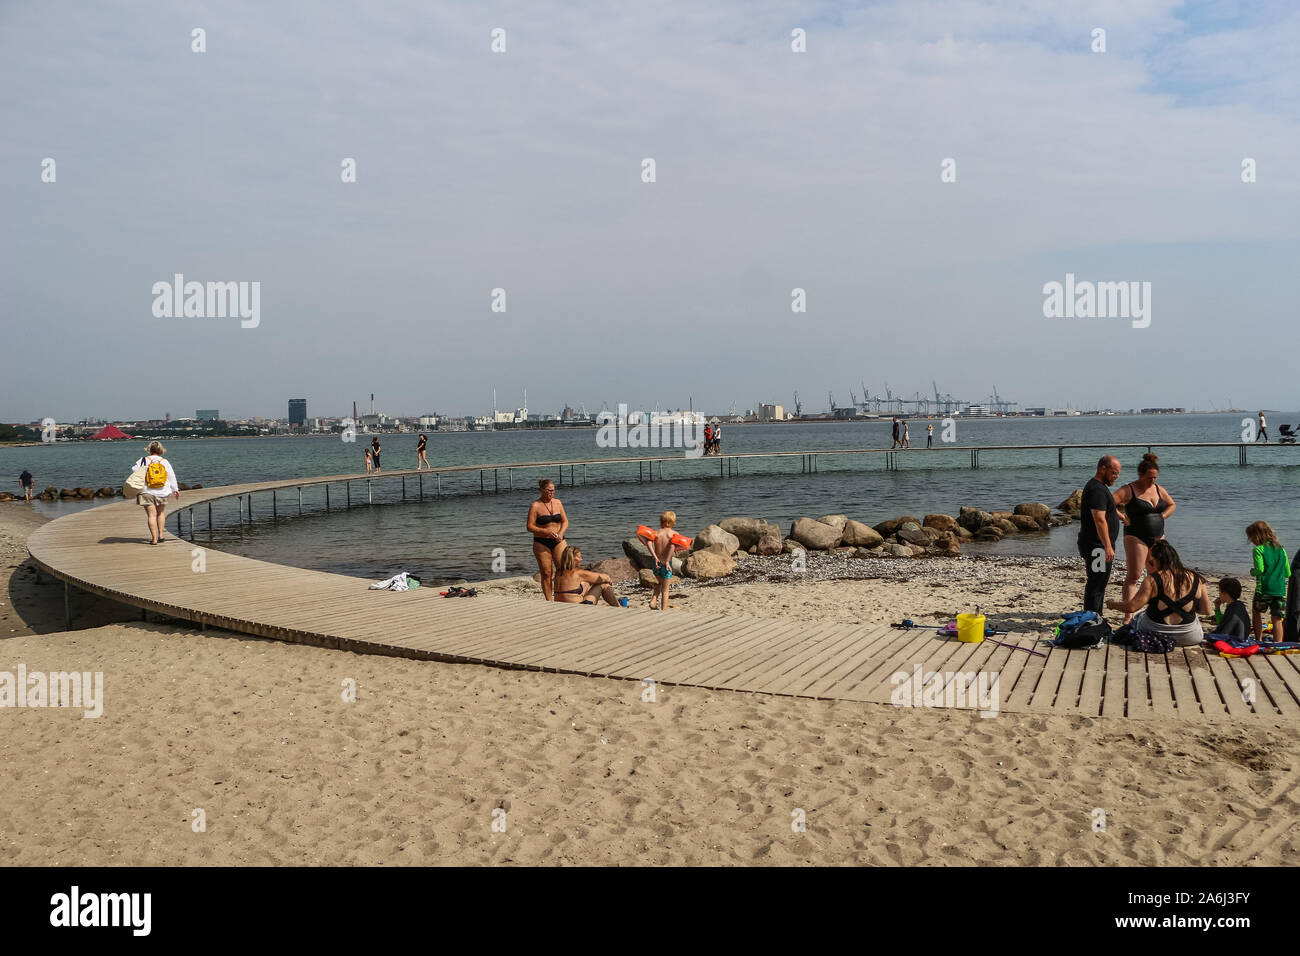 People walking by the The Infinite Bridge (Den Uendelige Bro) - circle shaped wooden pier built on a sea coast of a Aarhus Bay on a Varna Beach/Ballehage Beach, created by architect Niels Povlsgaard and Johan Gjødes  are seen in Aarhus, Denmark on 30 July 2019  © Michal Fludra / Alamy Live News Stock Photo